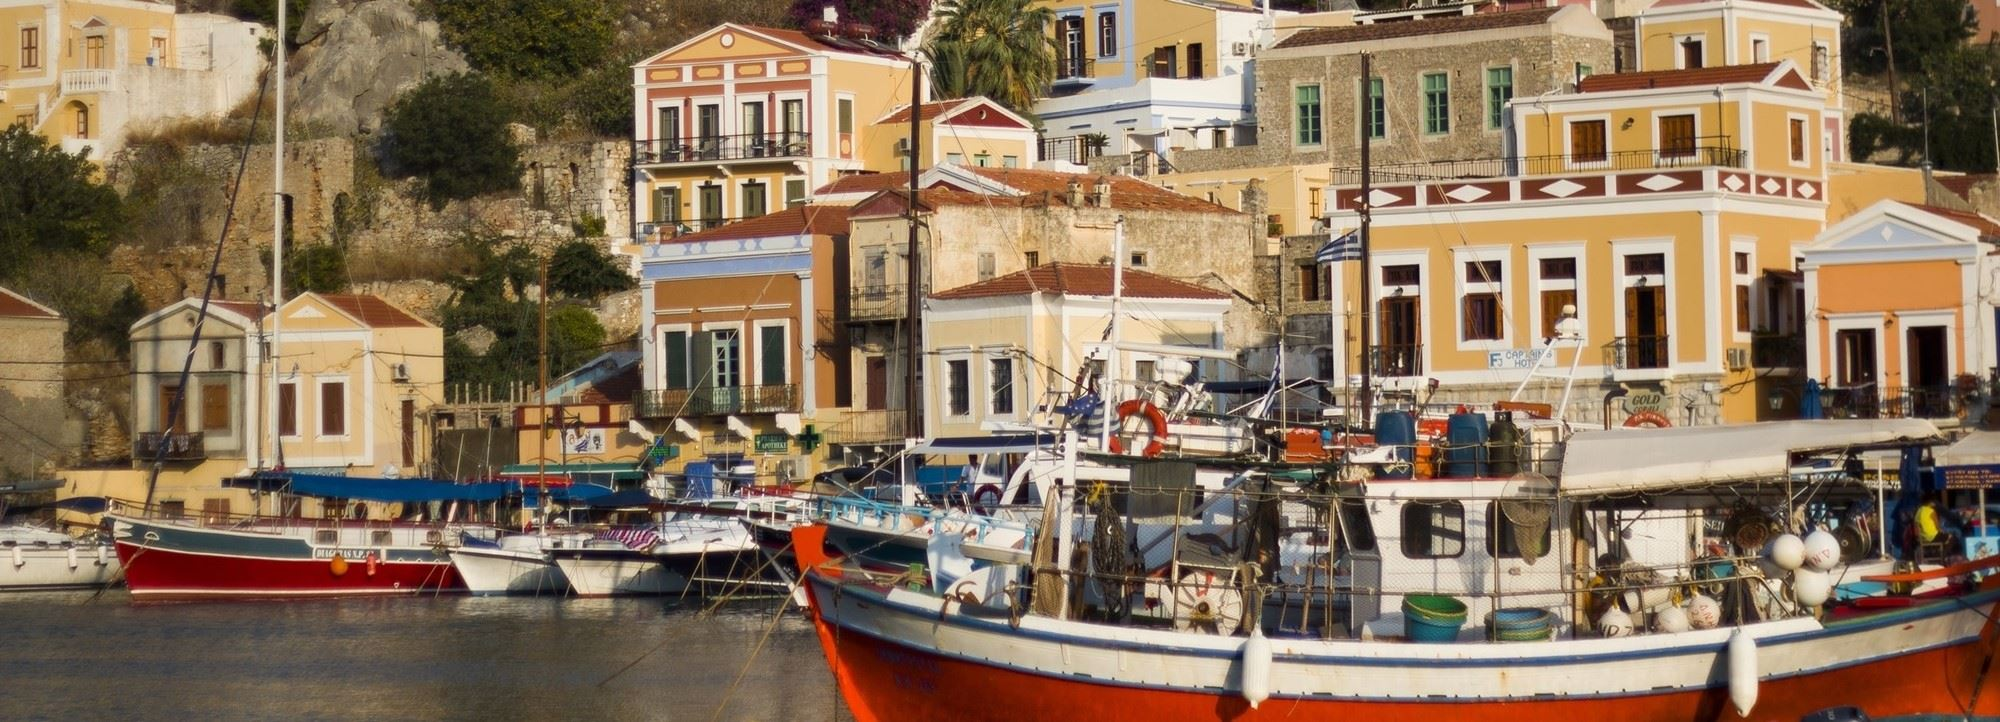 The Old Markets, Symi , A bijou boutique hotel overlooking the picturesque harbour